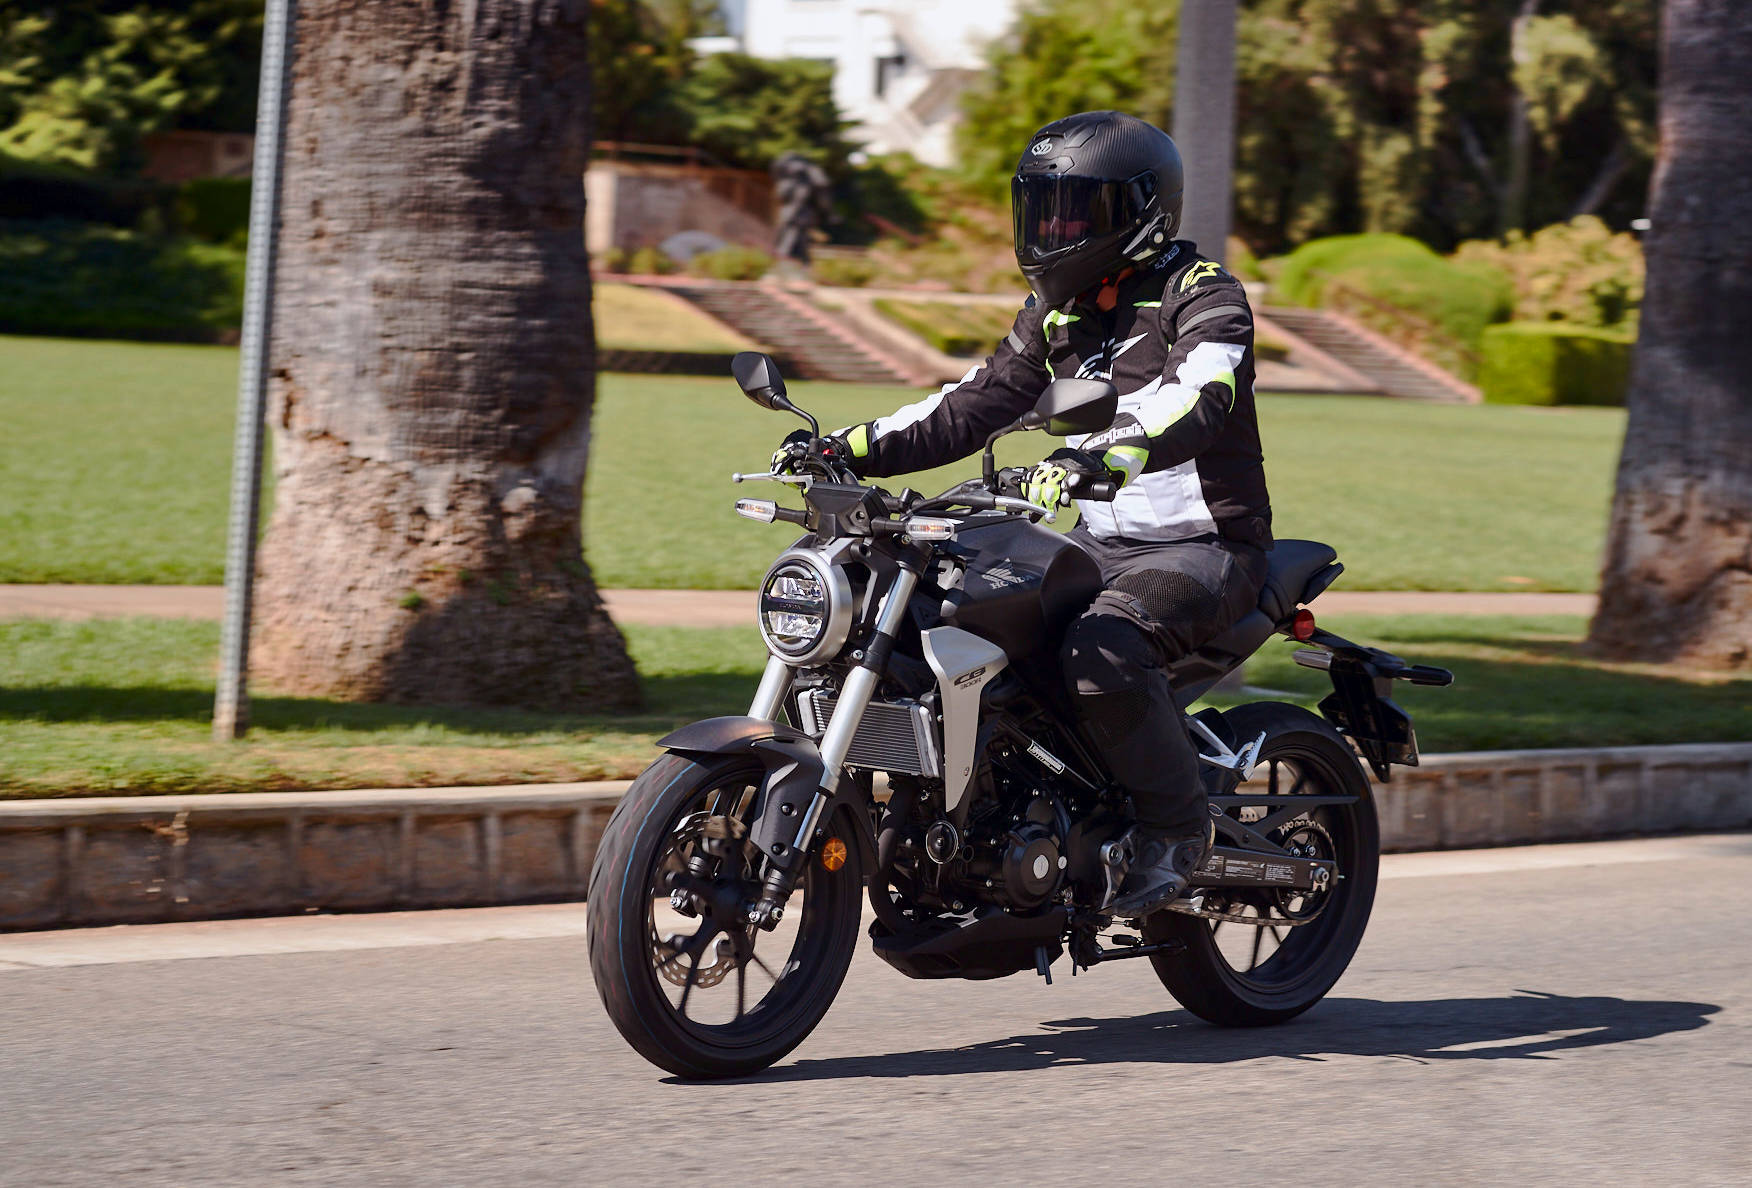 2019 honda cb300r md first ride review motorcycledaily. Black Bedroom Furniture Sets. Home Design Ideas